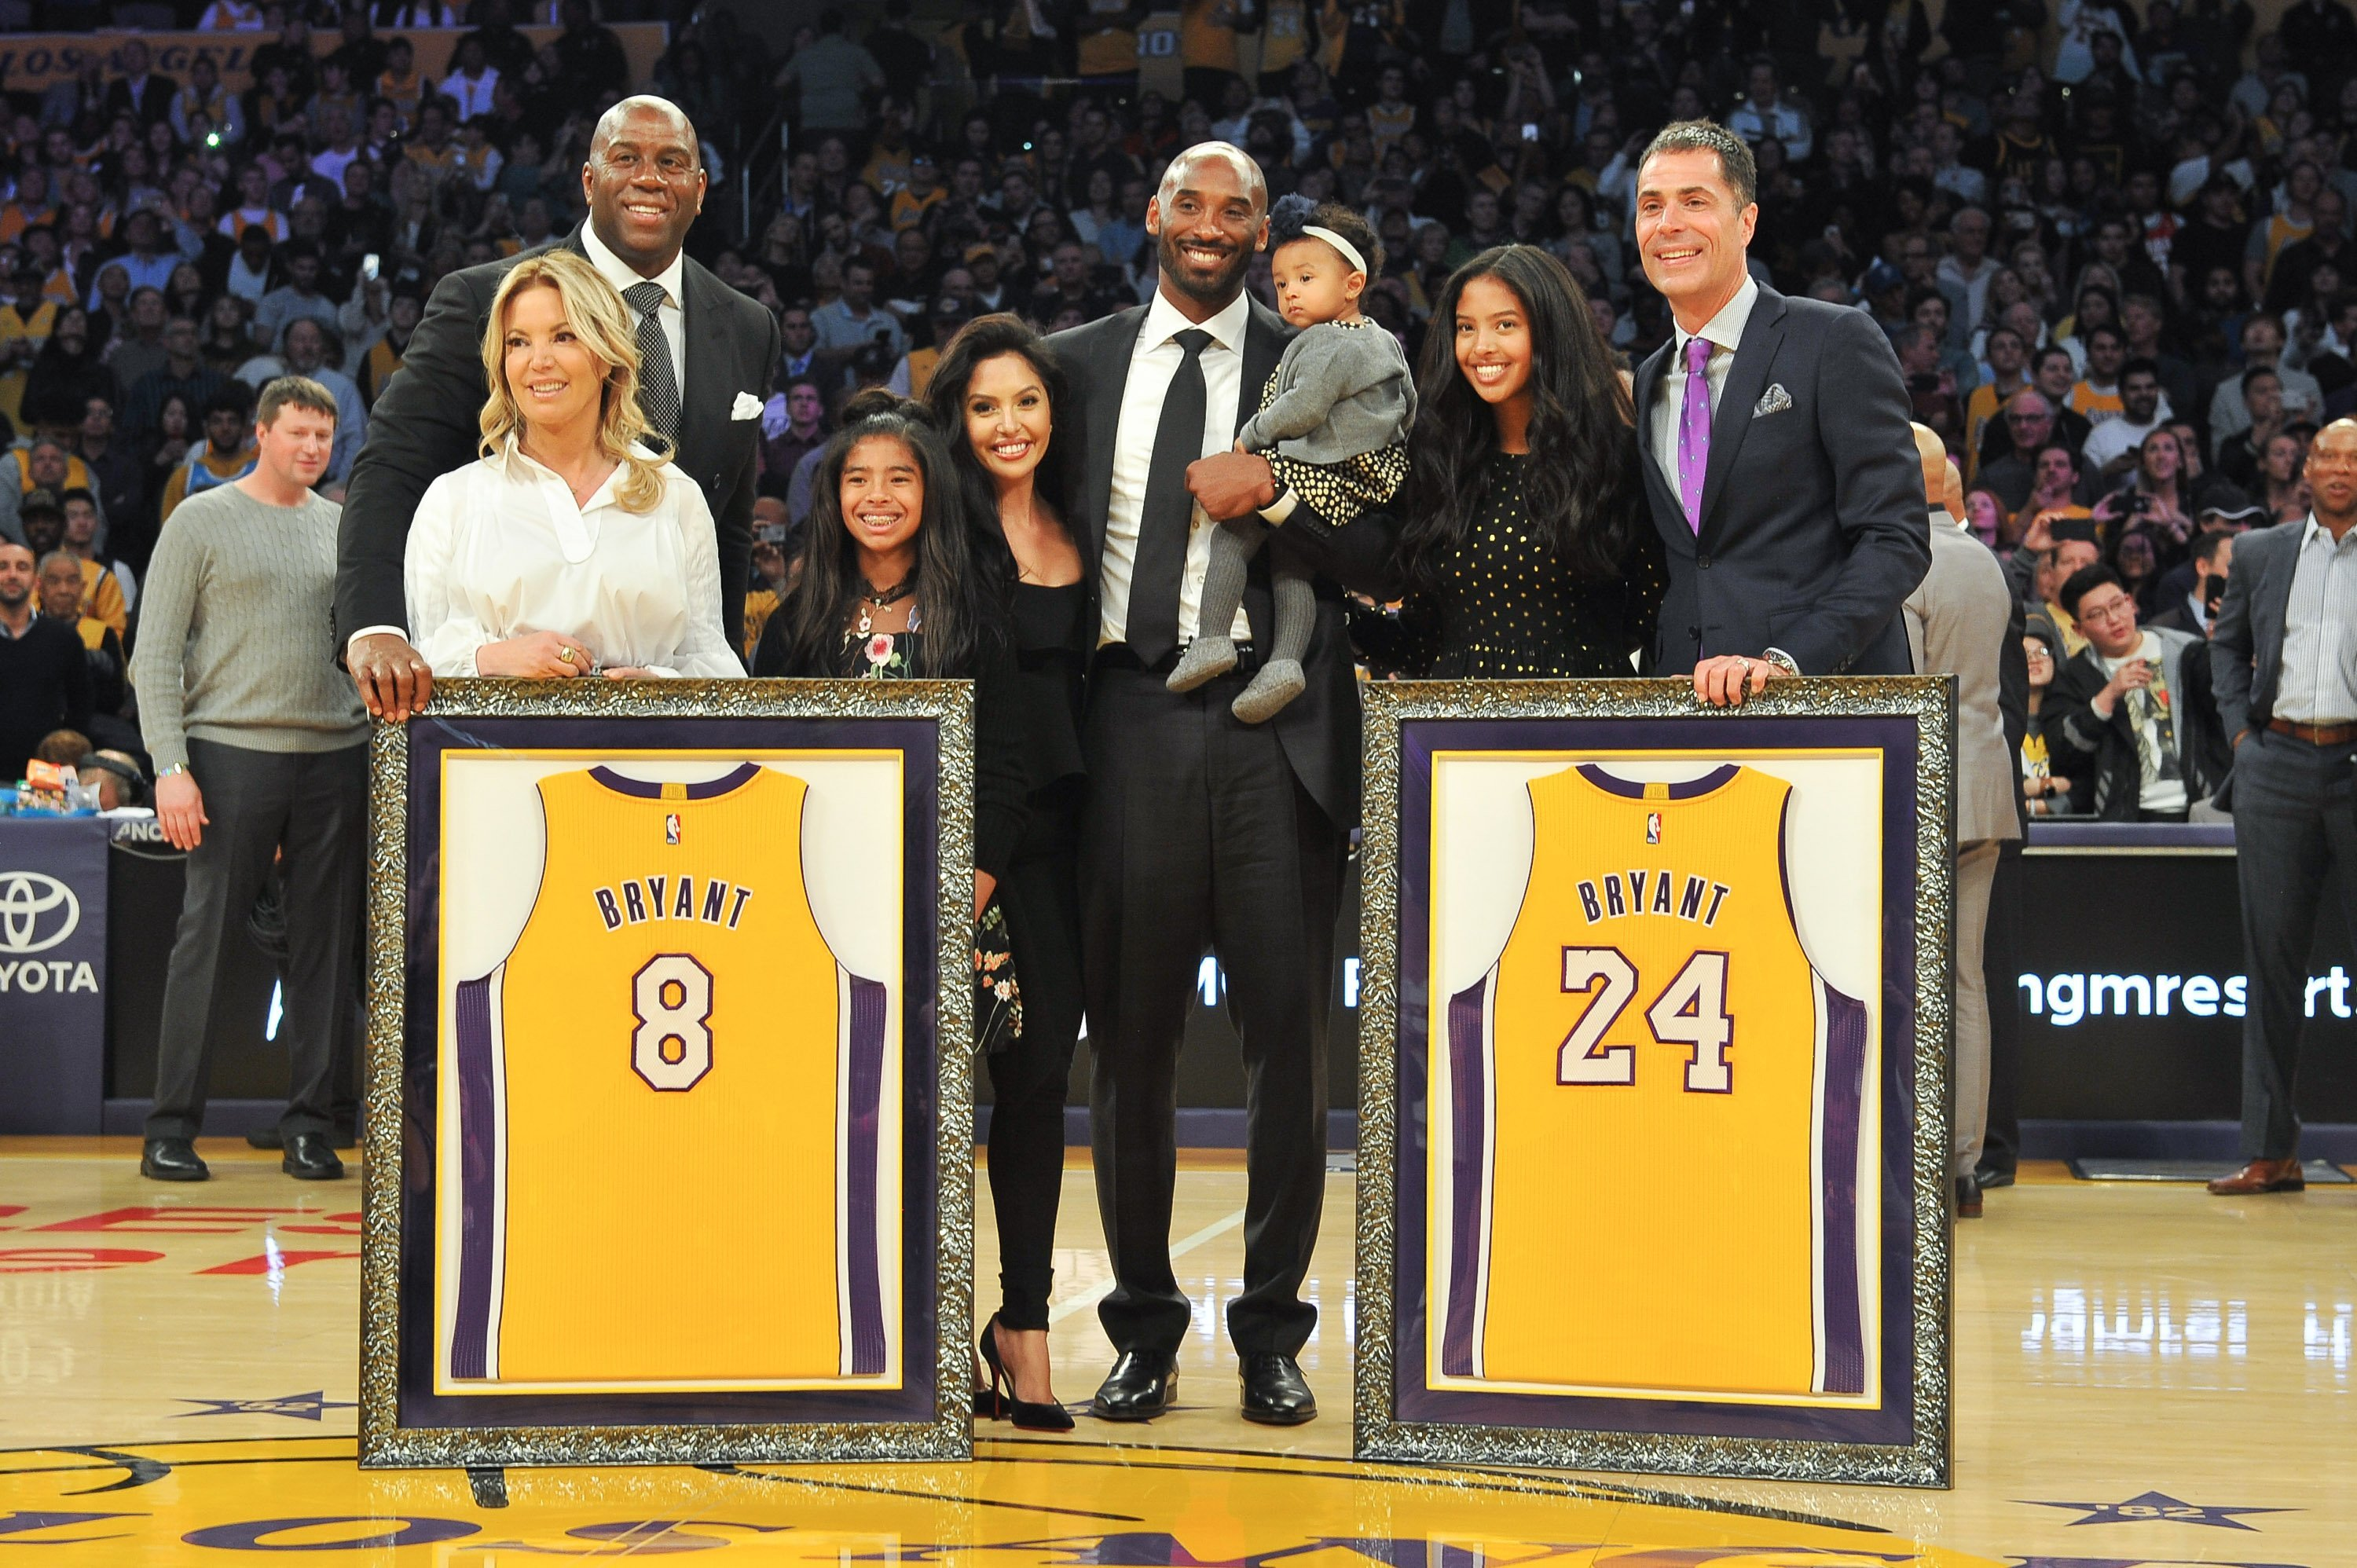 Magic Johnson, Jeanie Buss, Kobe Bryant, Vanessa Bryant, their daughters, and Rob Pelinka during Kobe Bryant's jersey retirement ceremony  at Staples Center on December 18, 2017  | Photo: GettyImages